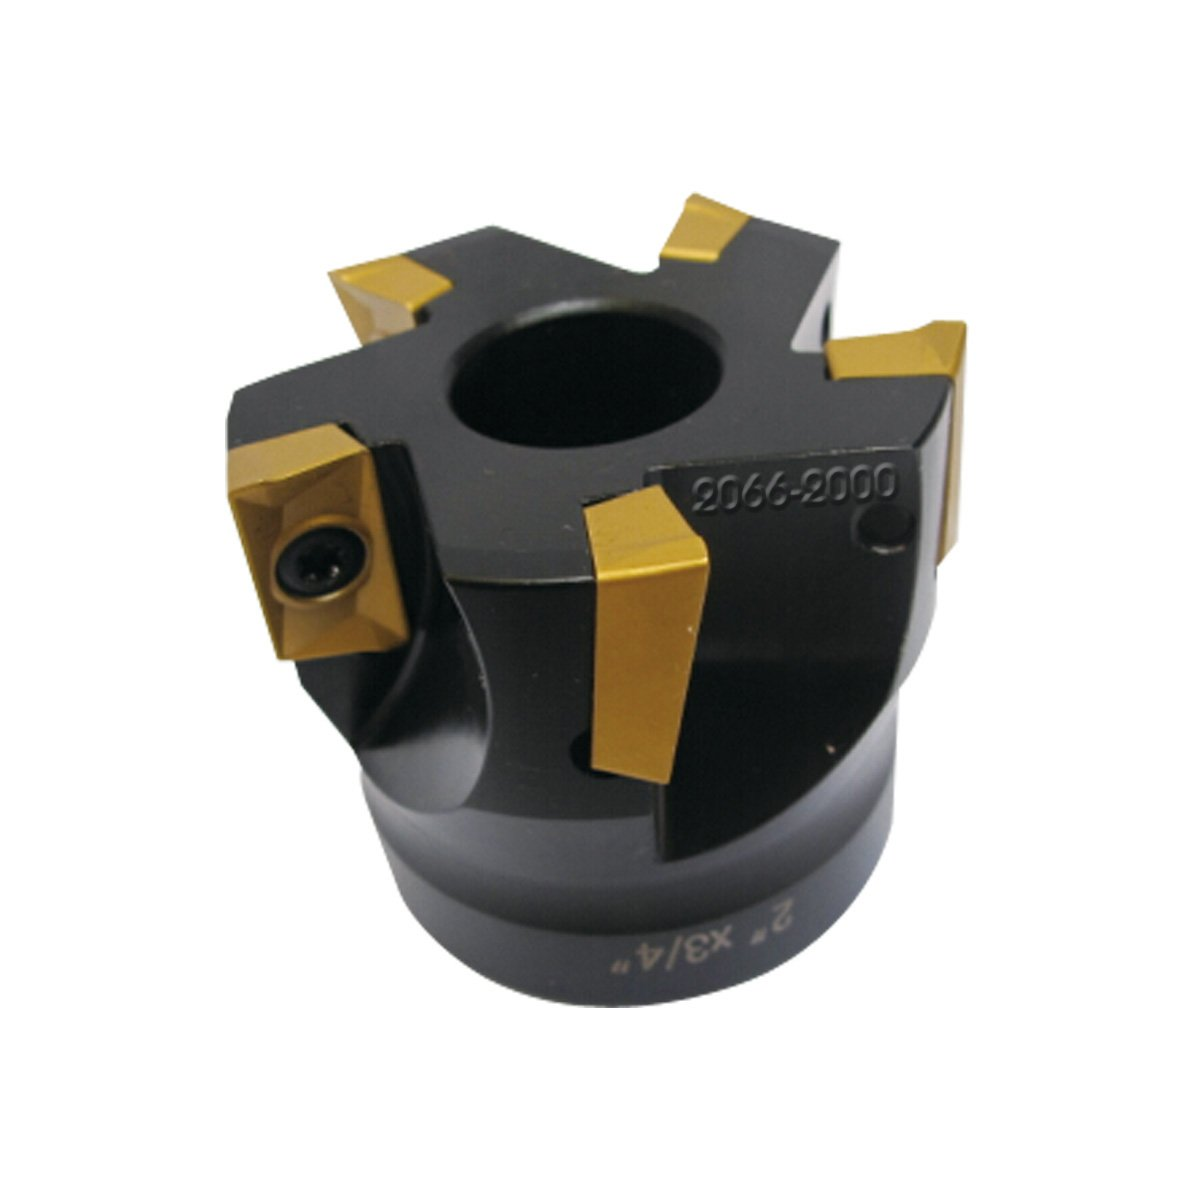 HHIP 2066-2000 2'' x 3/4'' Bore 90 Degree APKT-160408 Index able Face Mill, 5 Teeth